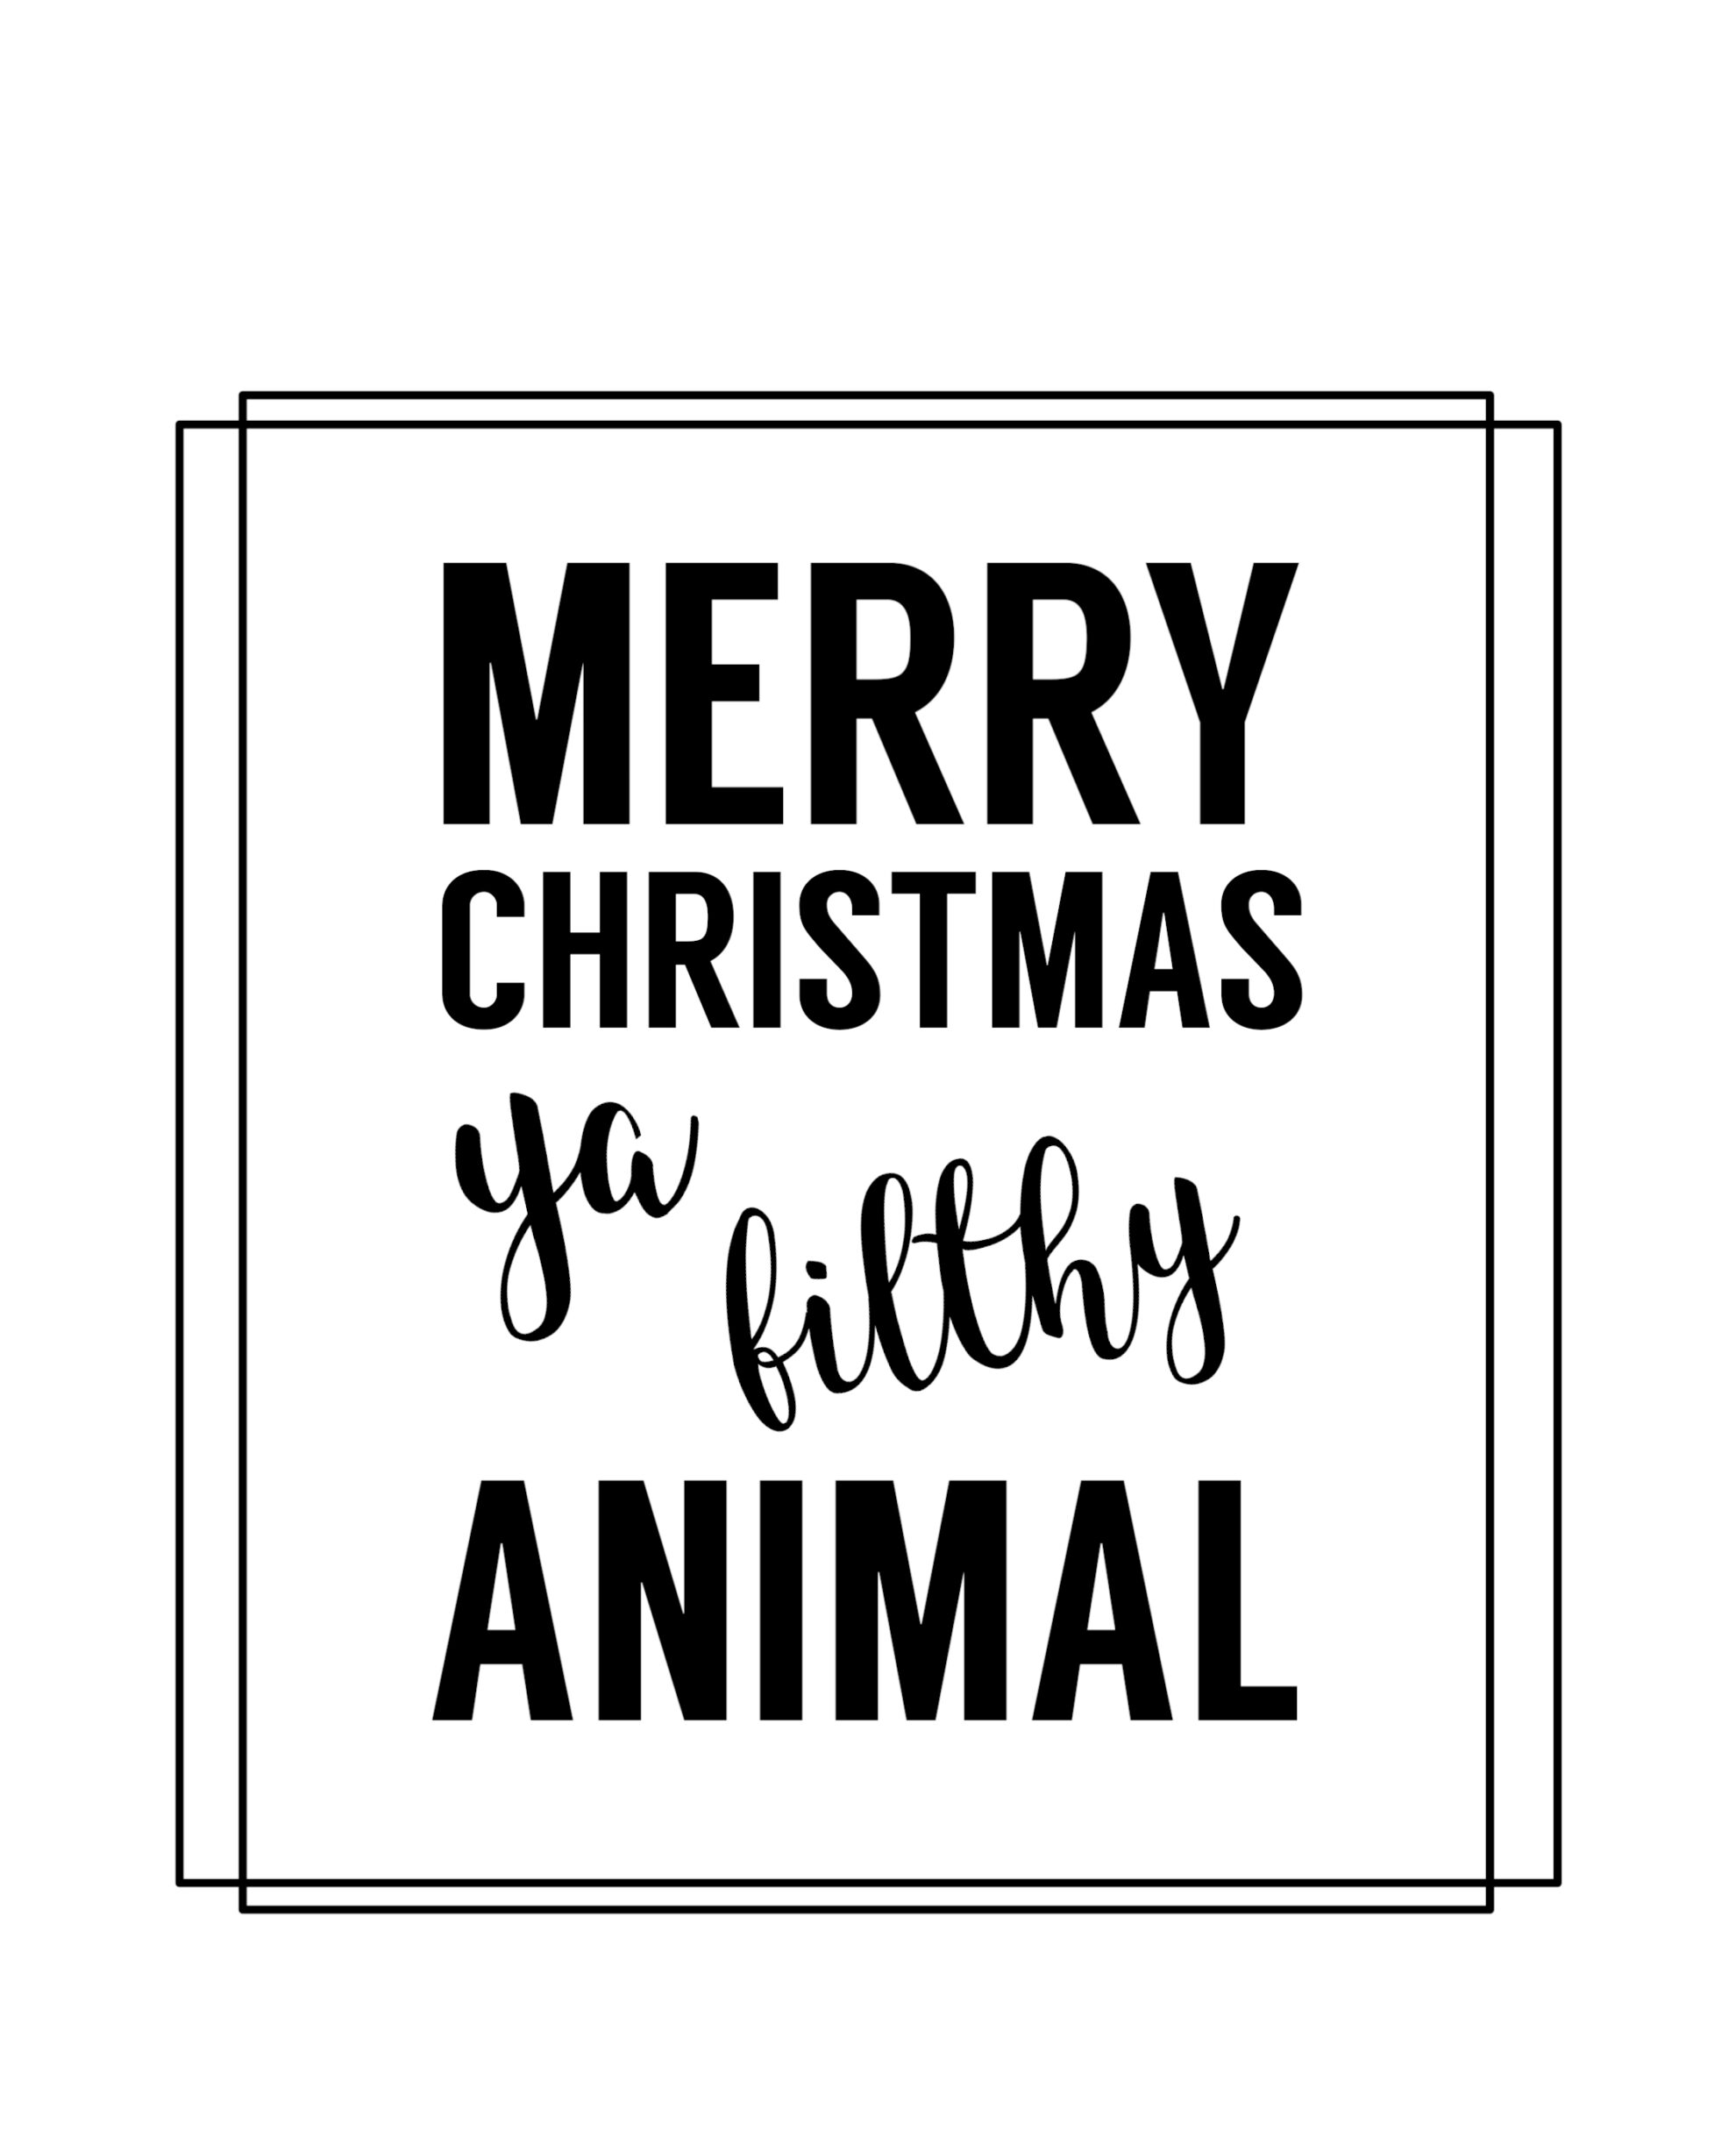 click the following links to print the merry christmas ya filthy animal card free printable